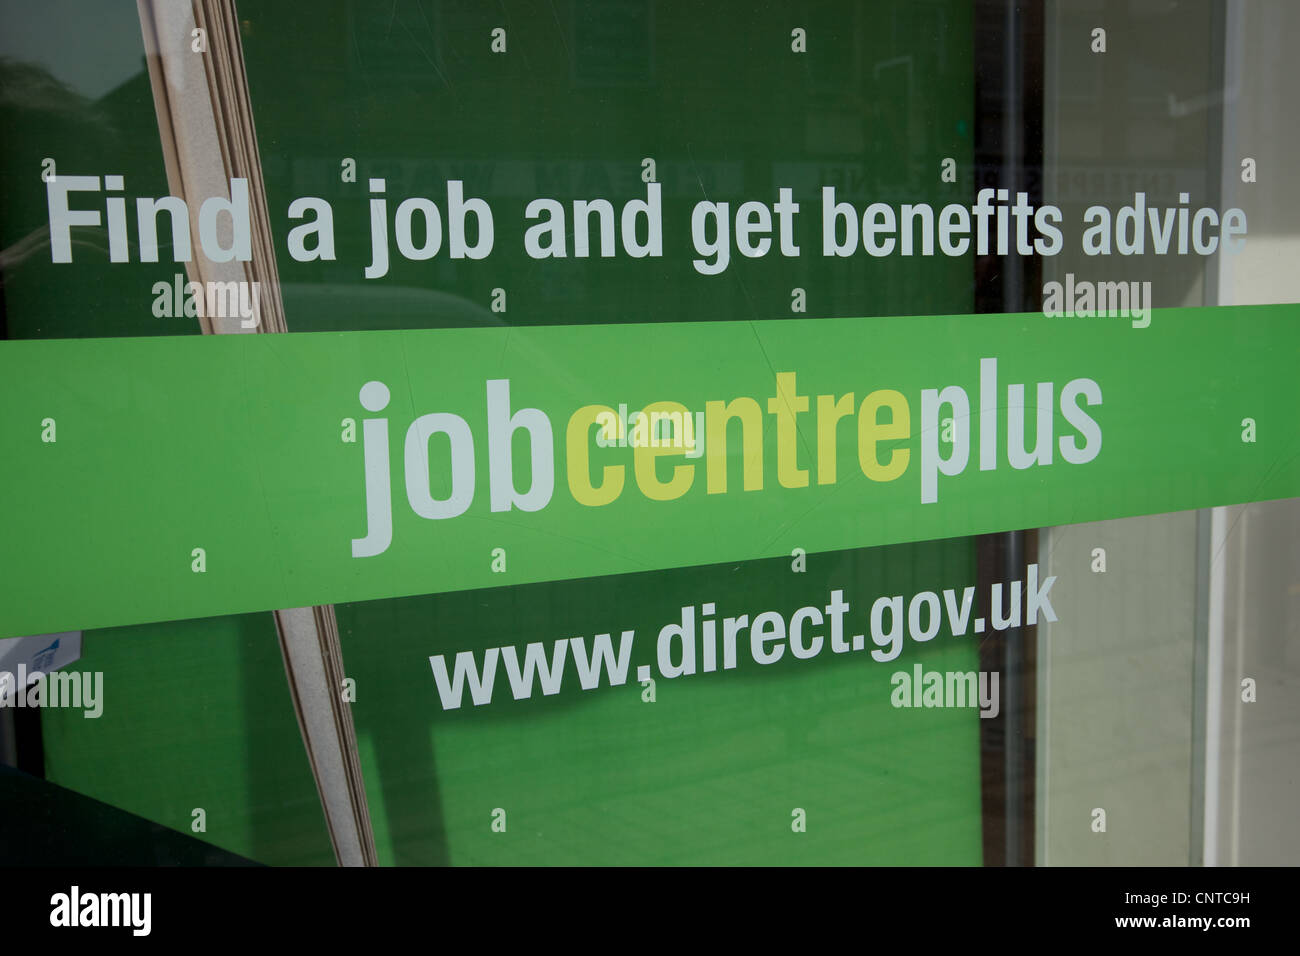 Job centre in England - Stock Image